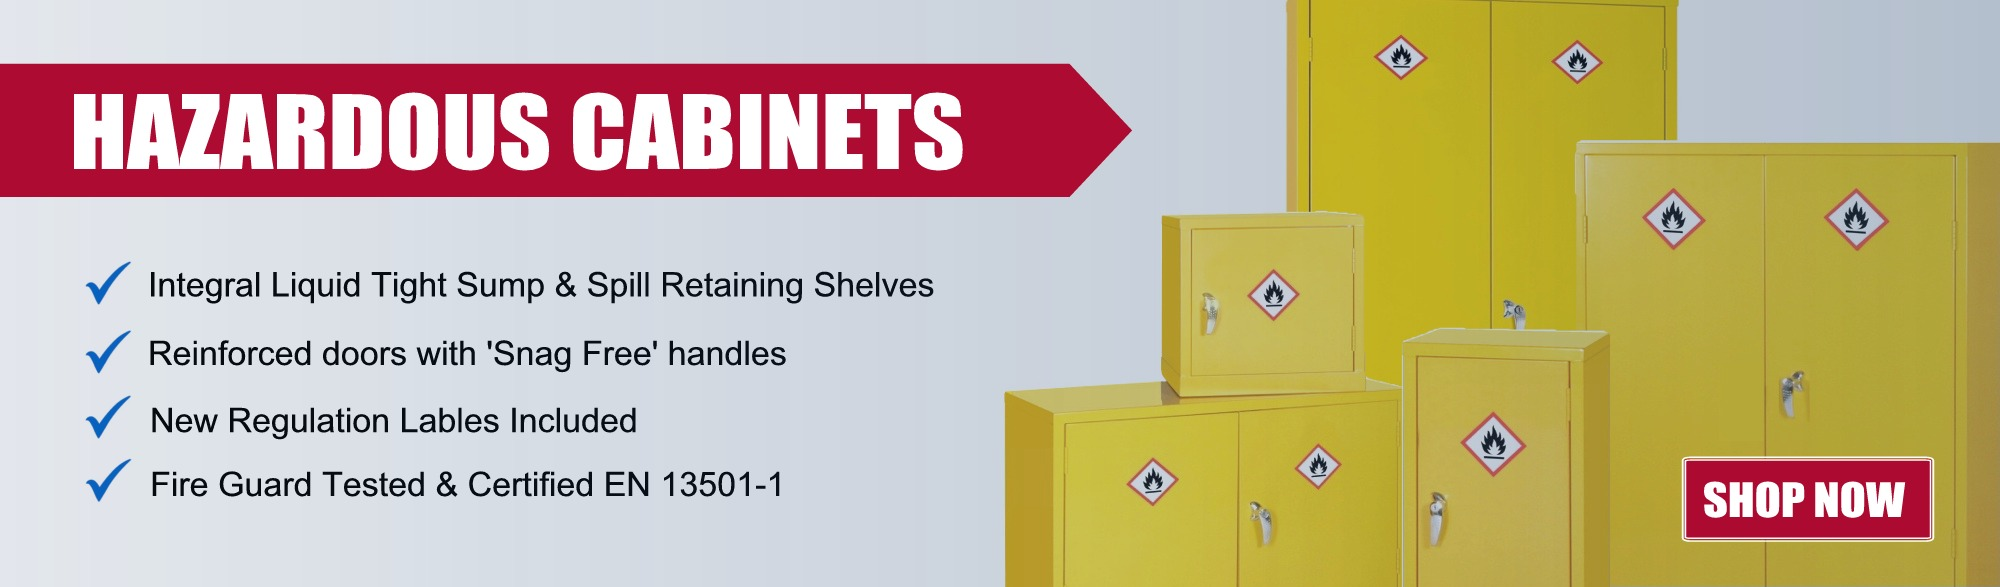 hazardous cabinets from £132.49